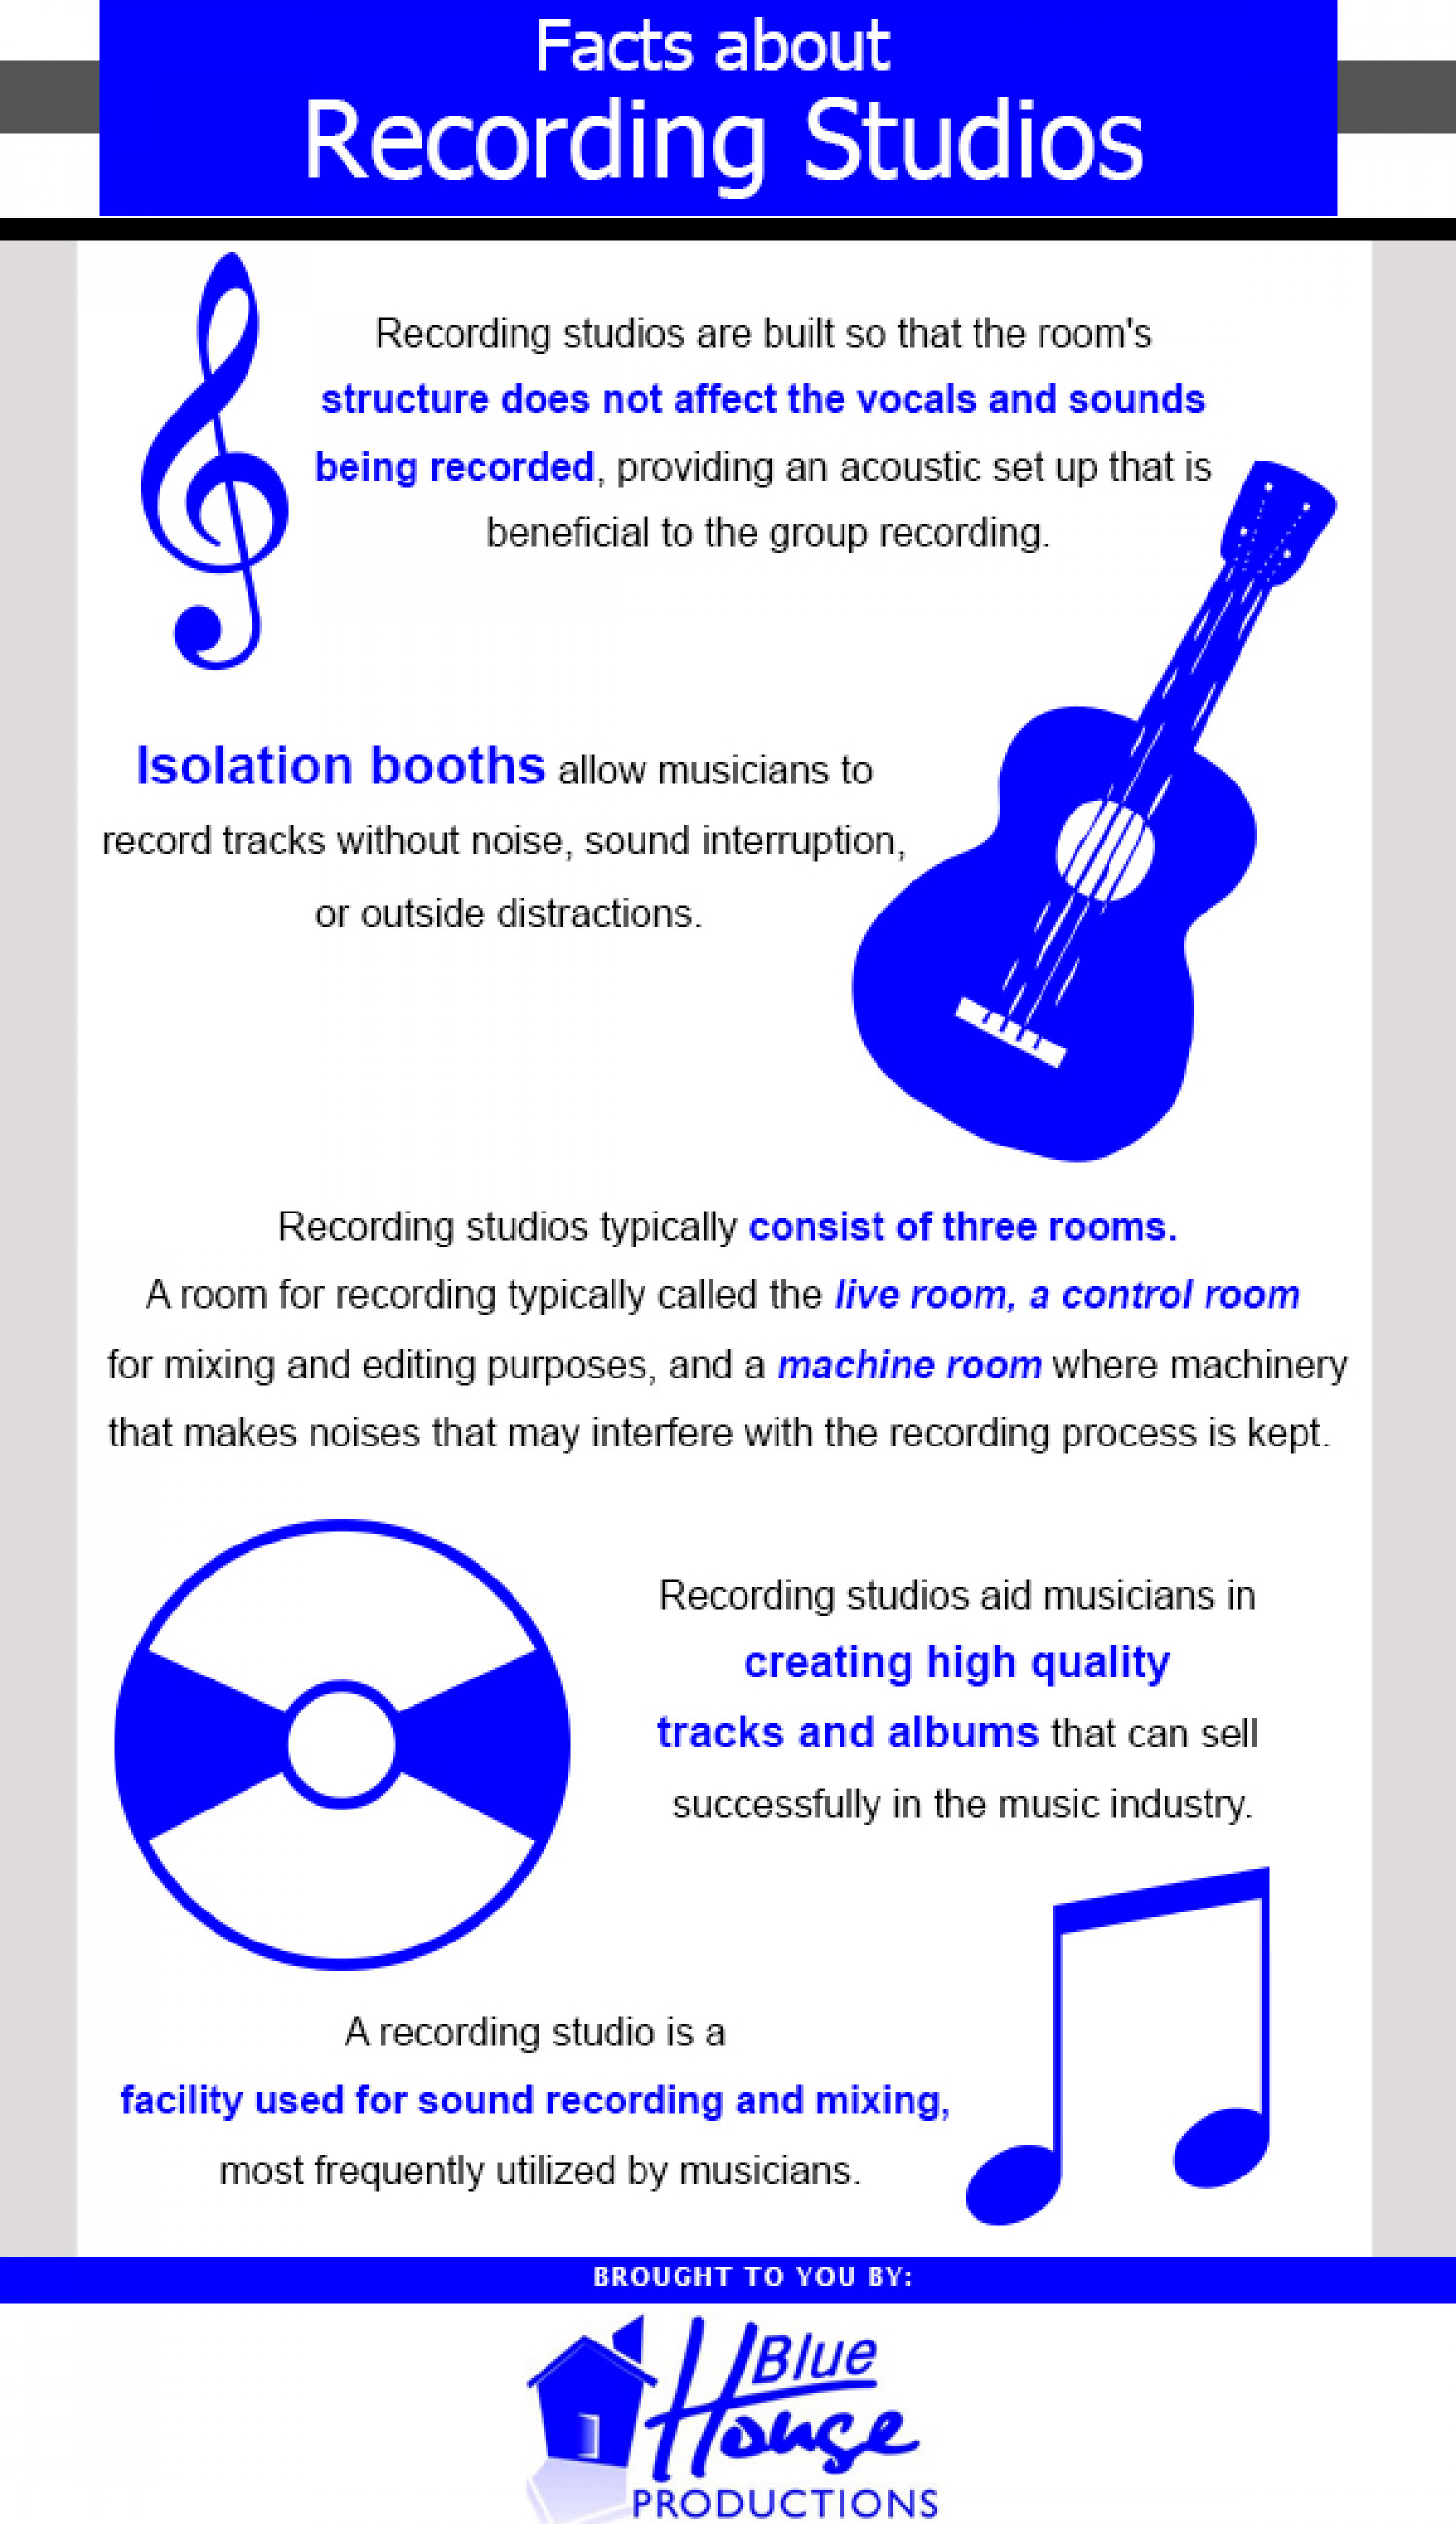 Facts About Recording Studios Infographic